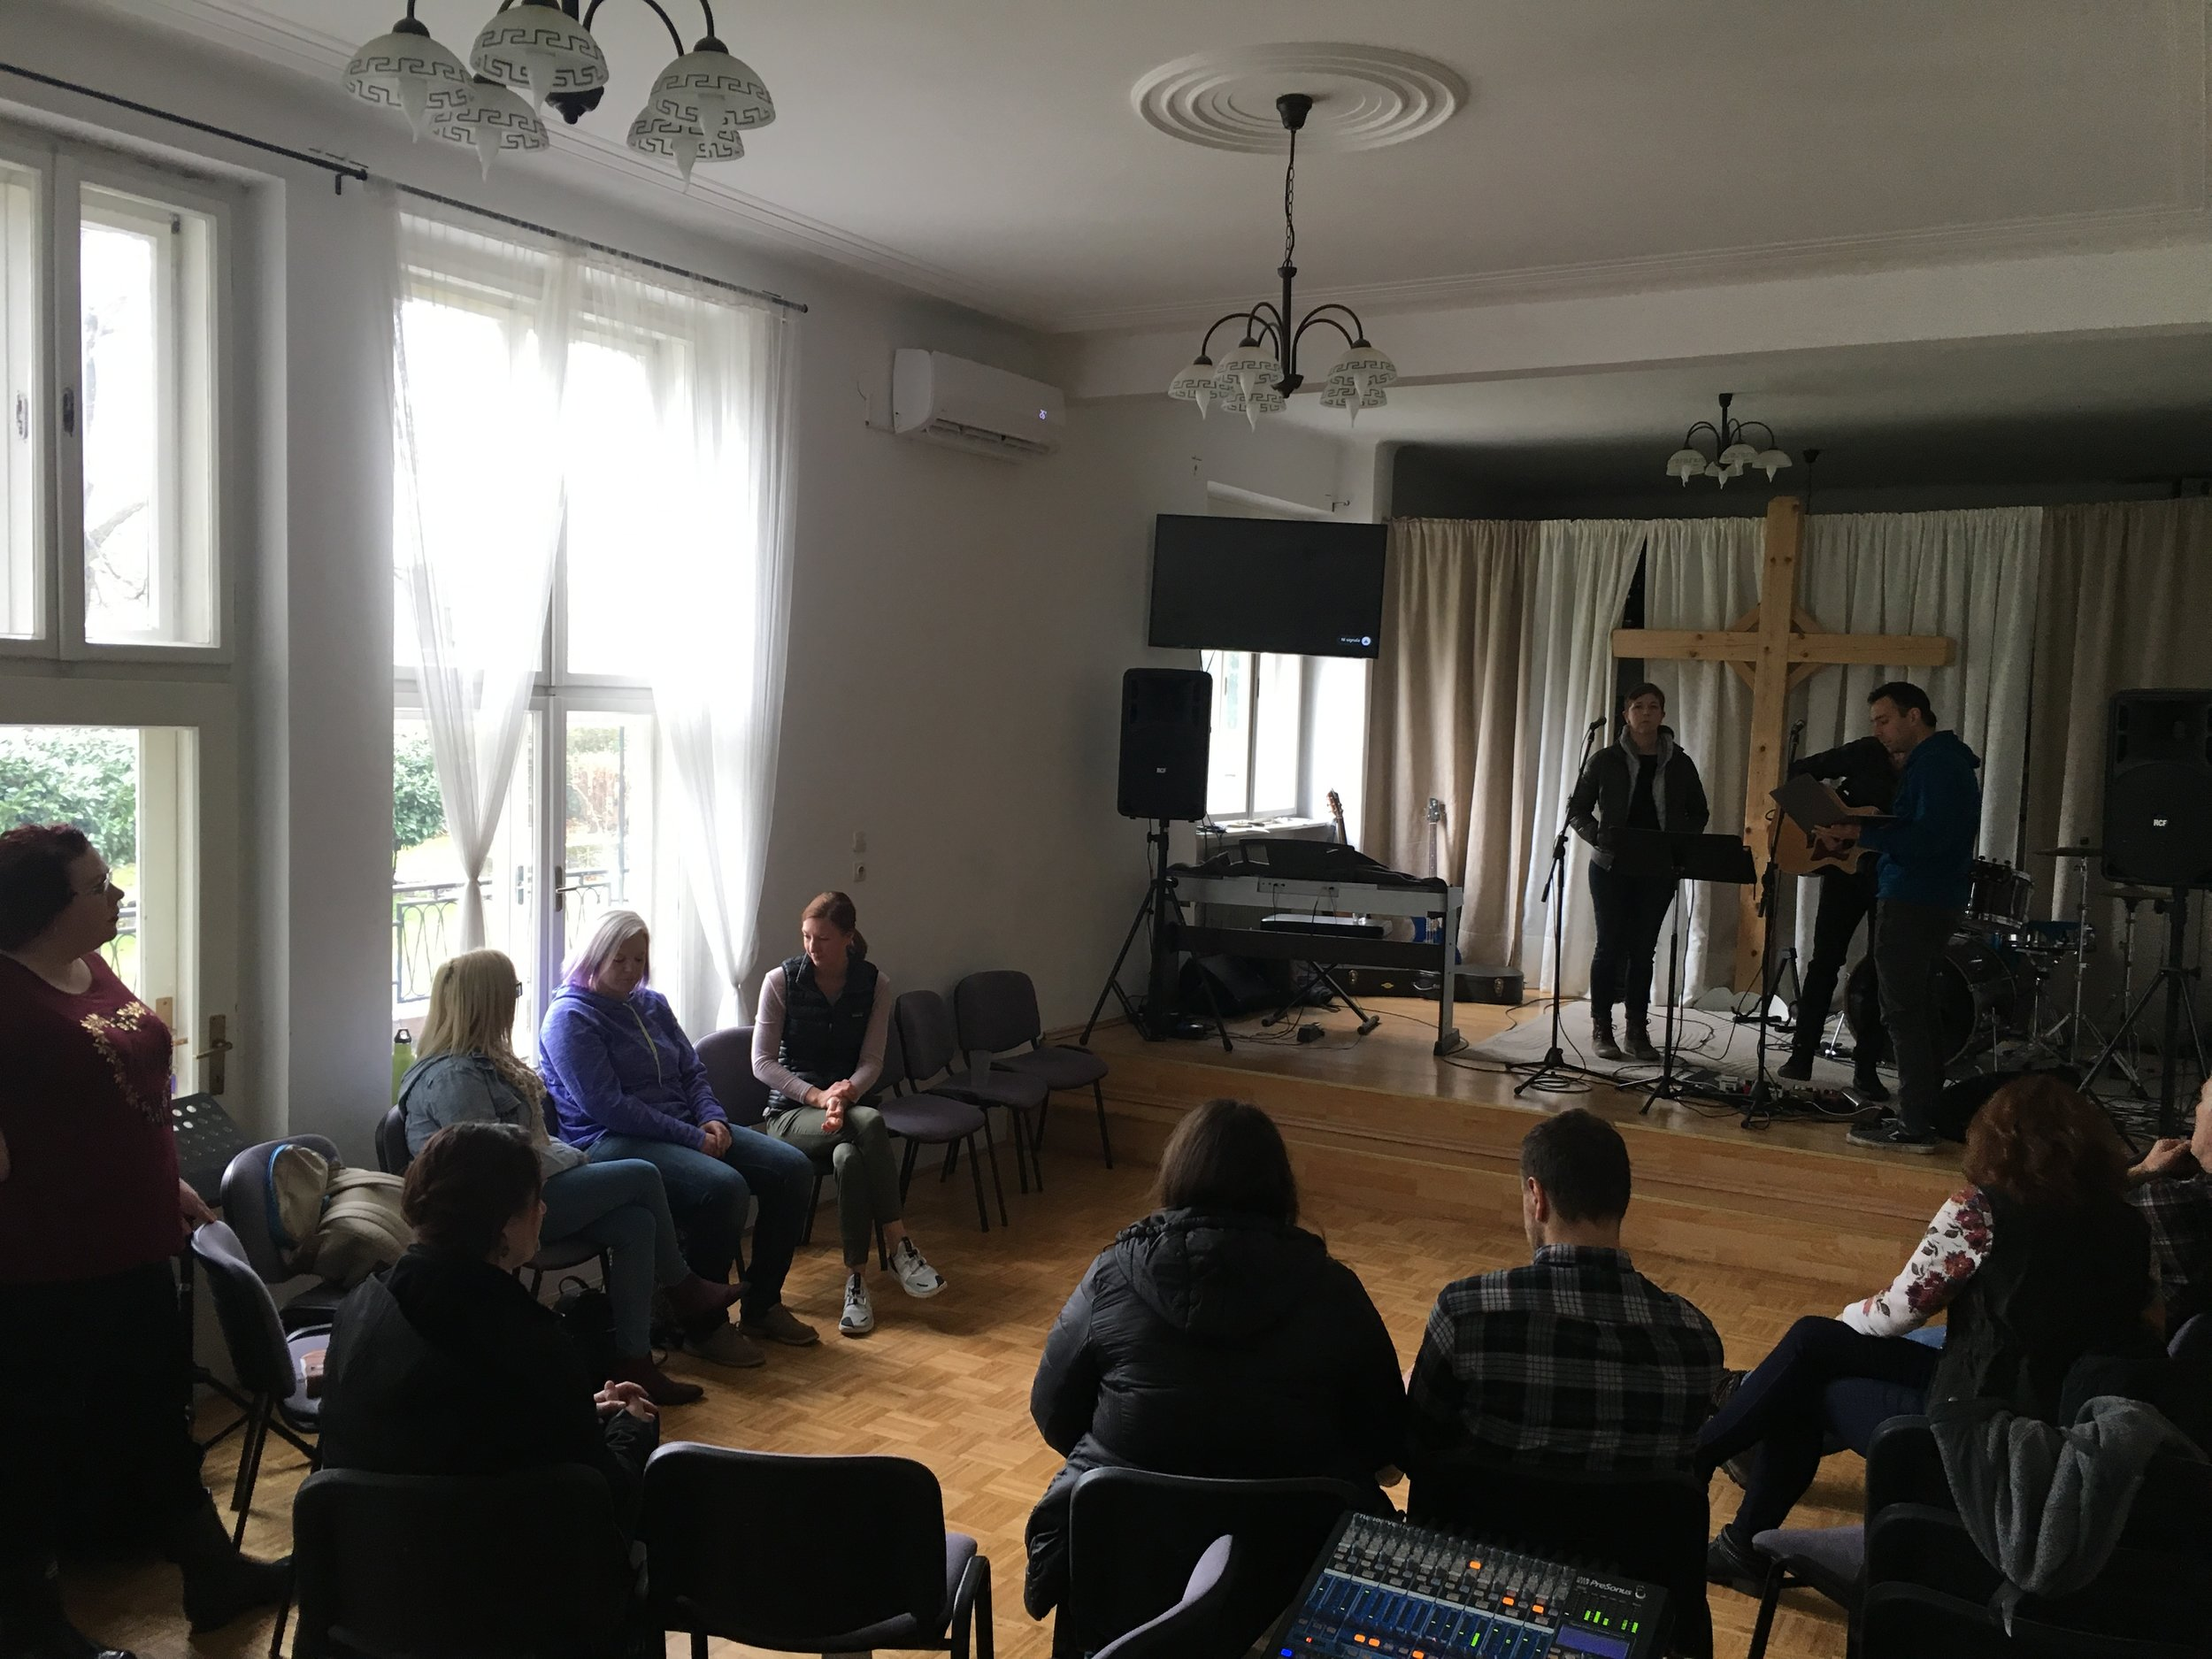 The week with the Bridgeway team and Celje church was incredibly encouraging